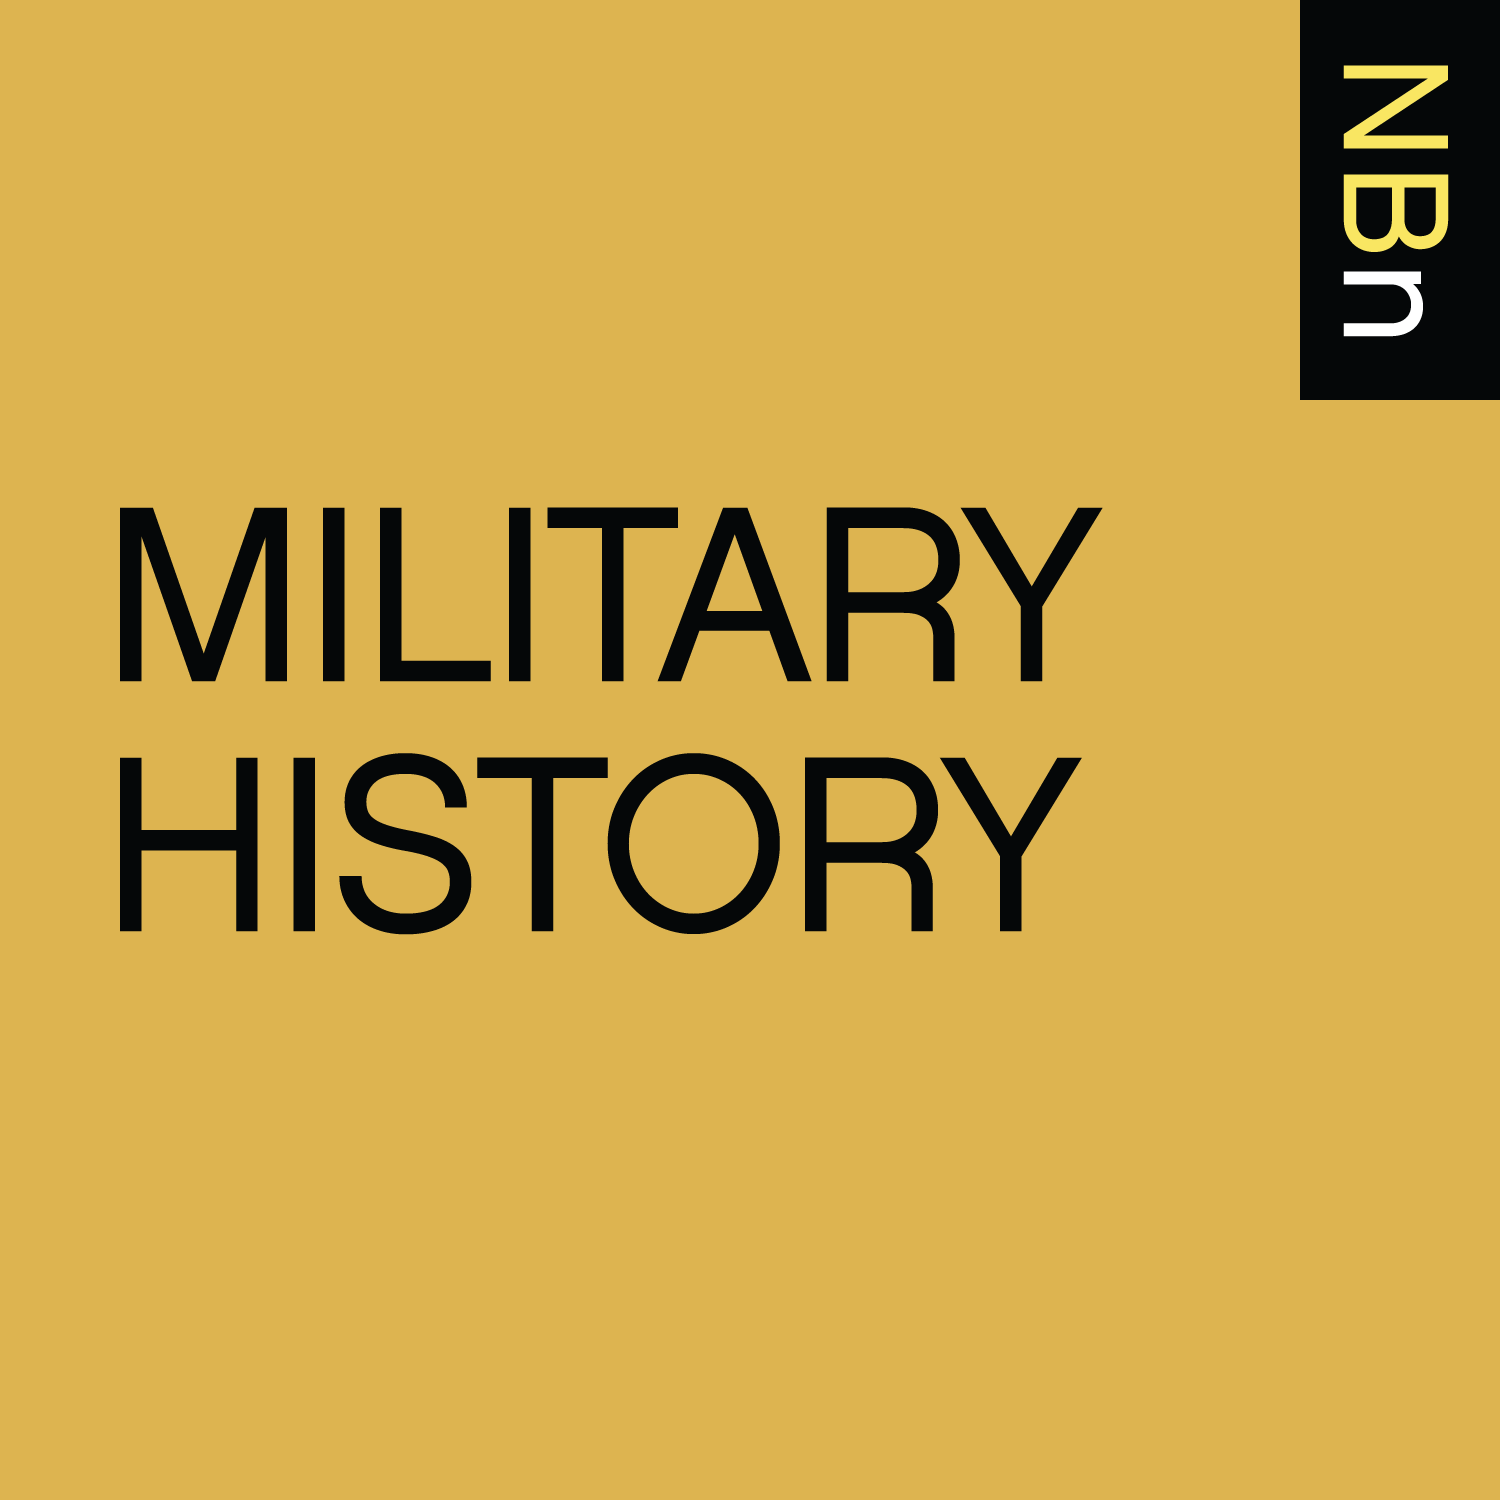 New Books in Military History podcast tile